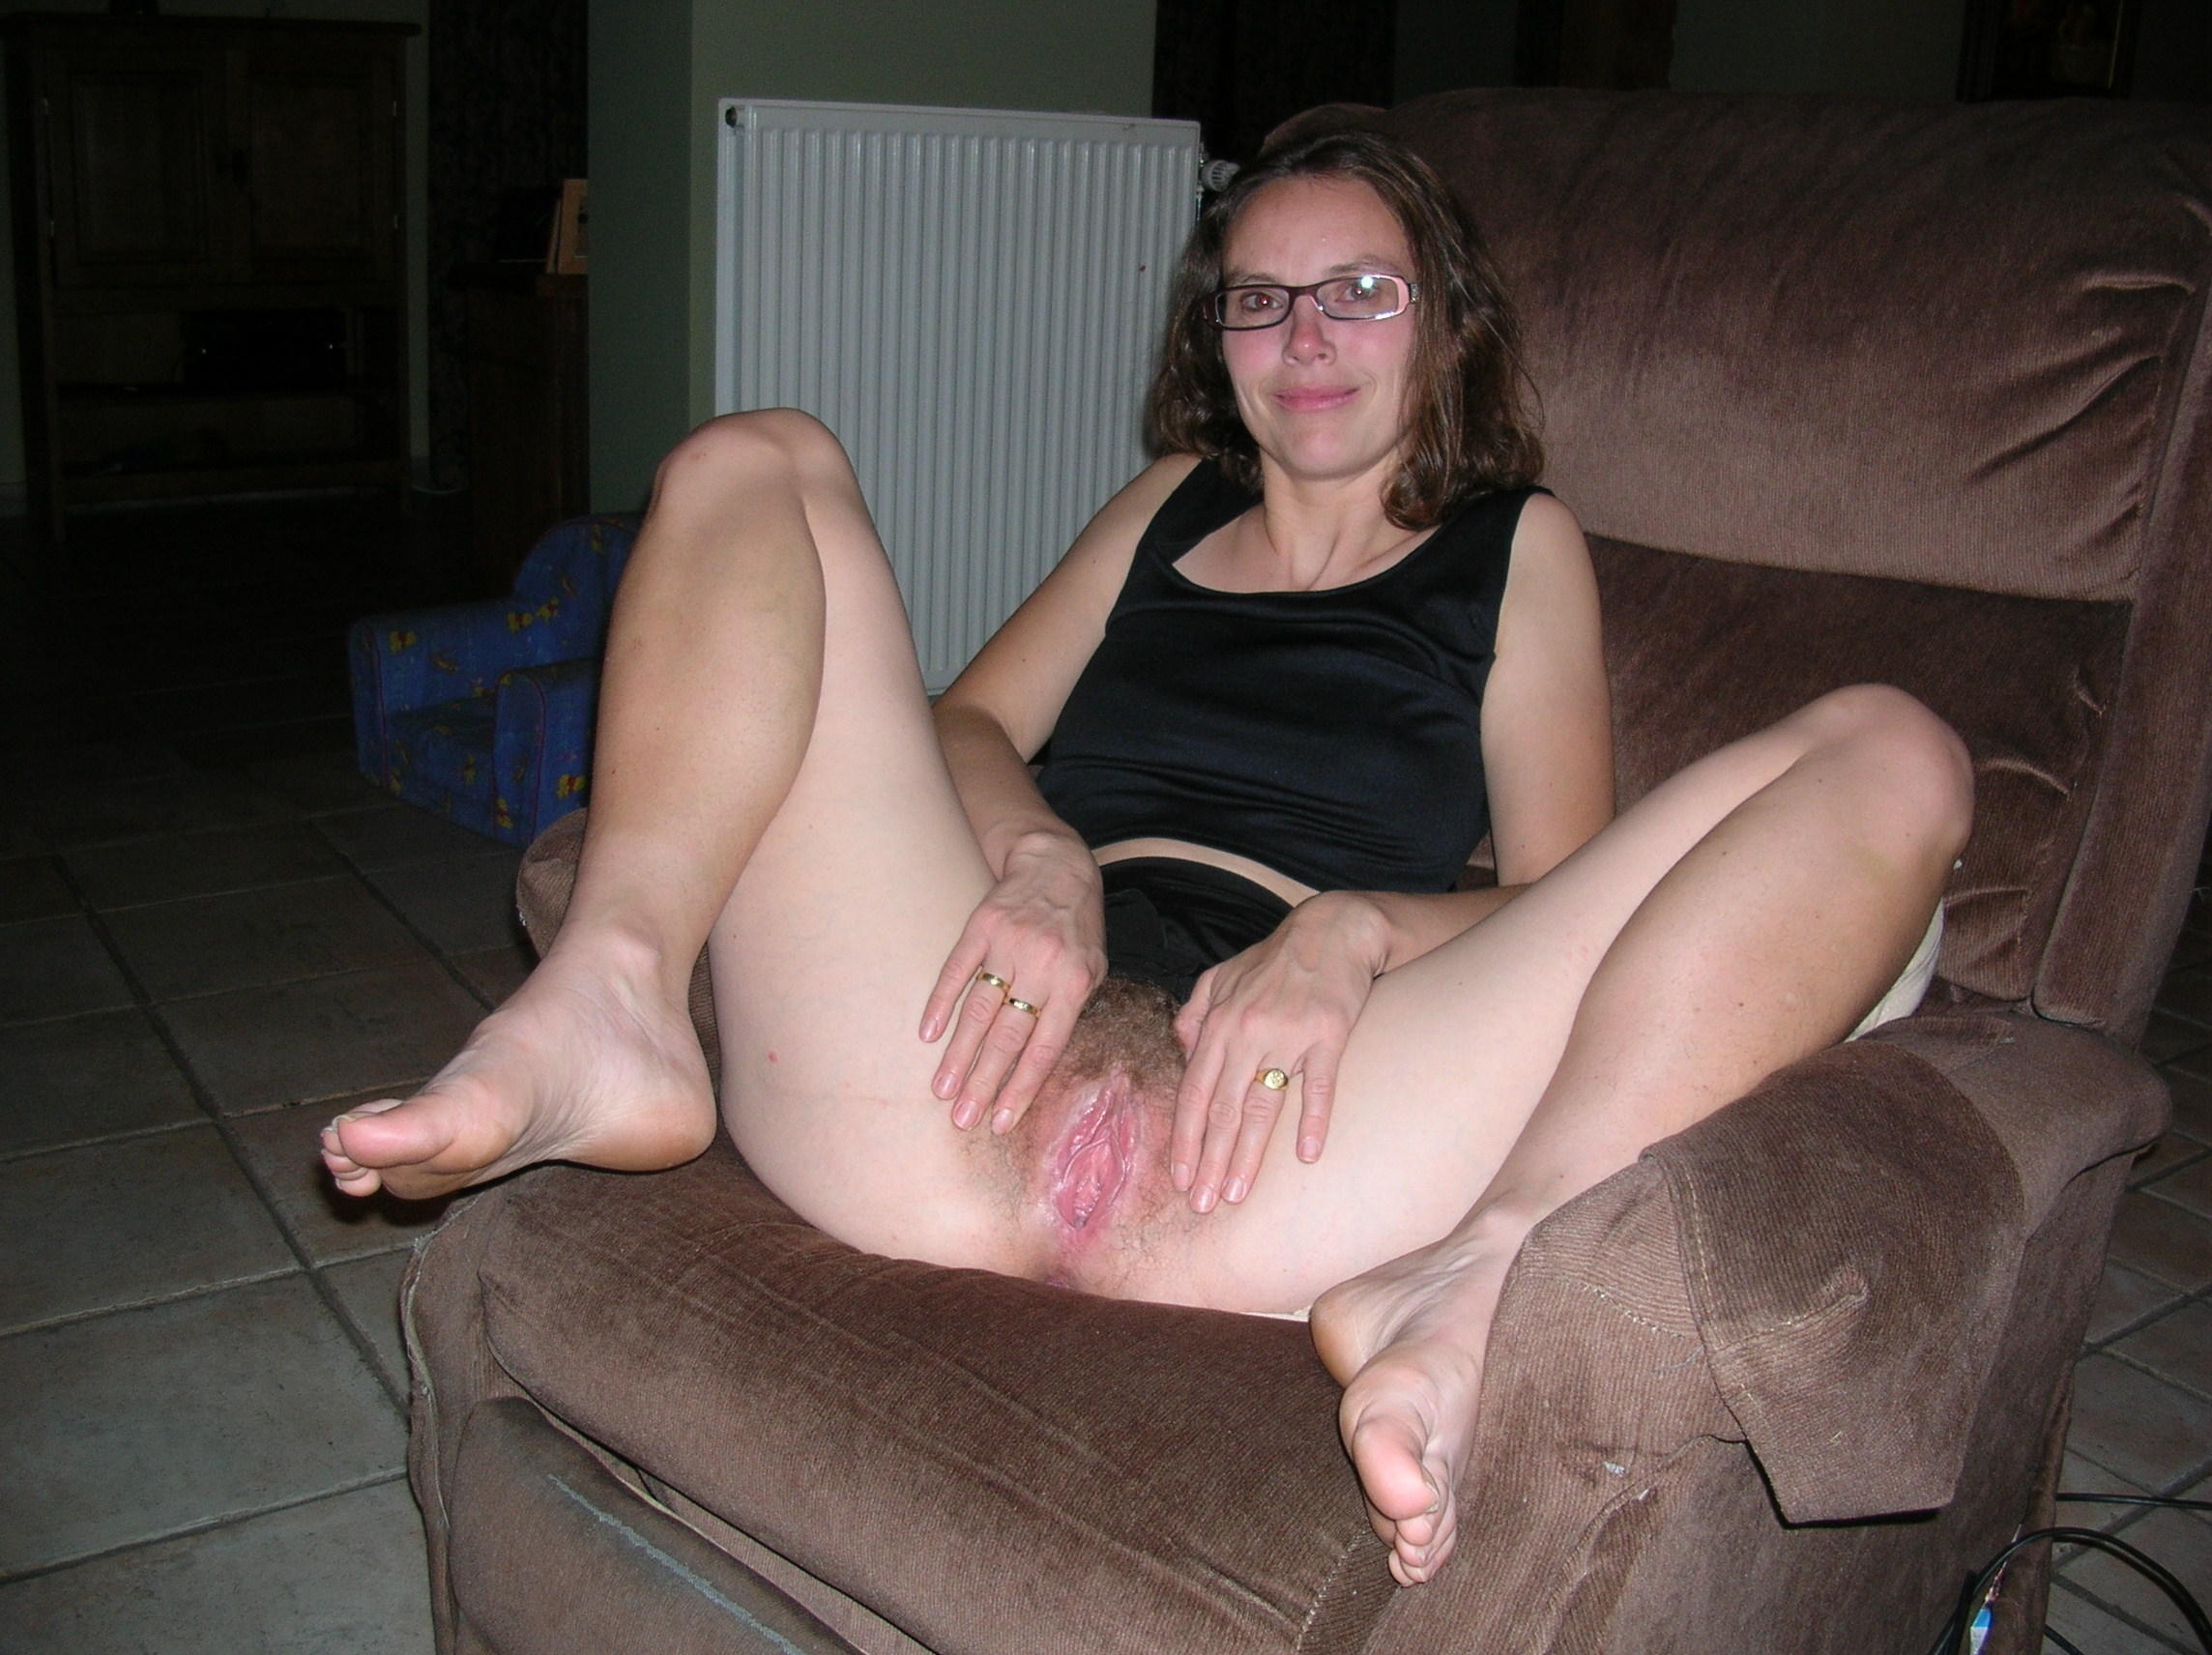 Pussy speculum stretched